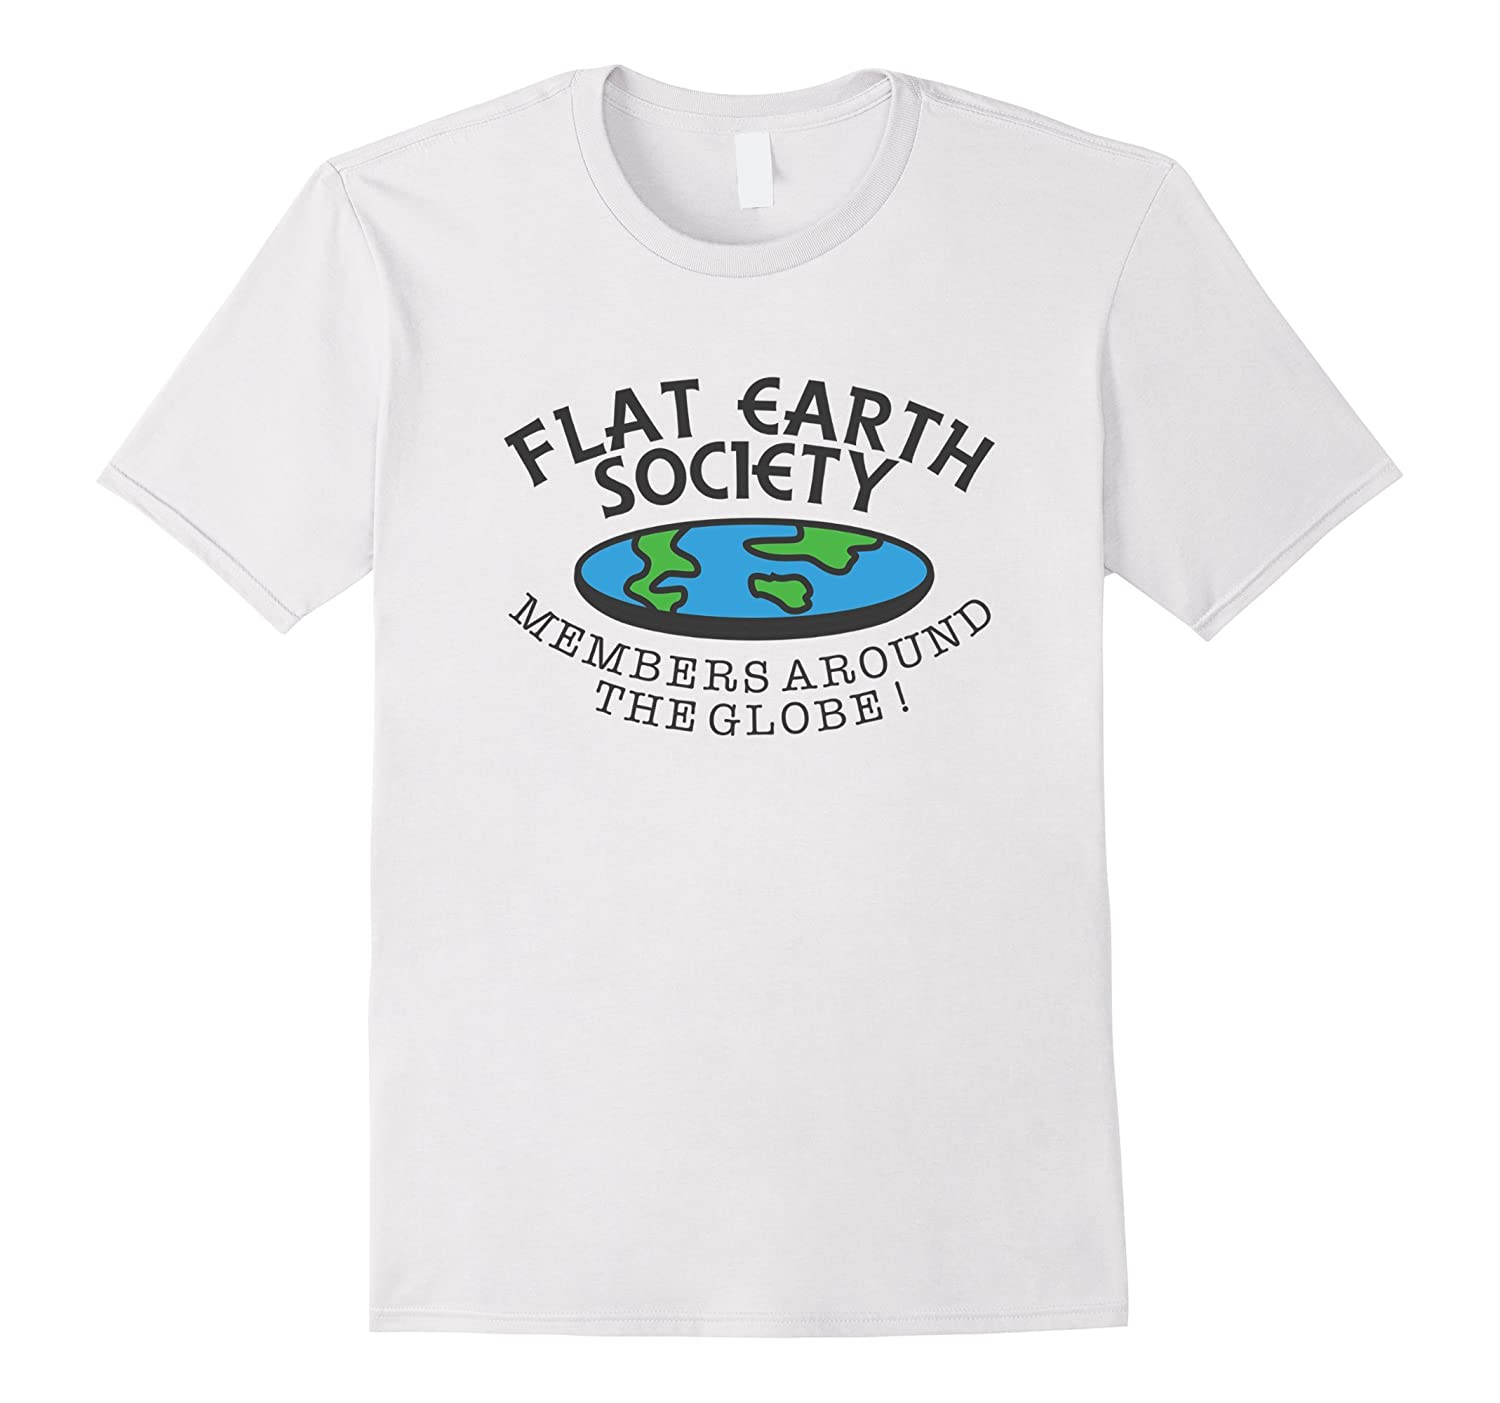 e99d289c Flat Earth Society – Members Around The Globe T-Shirt – Joke-CD ...